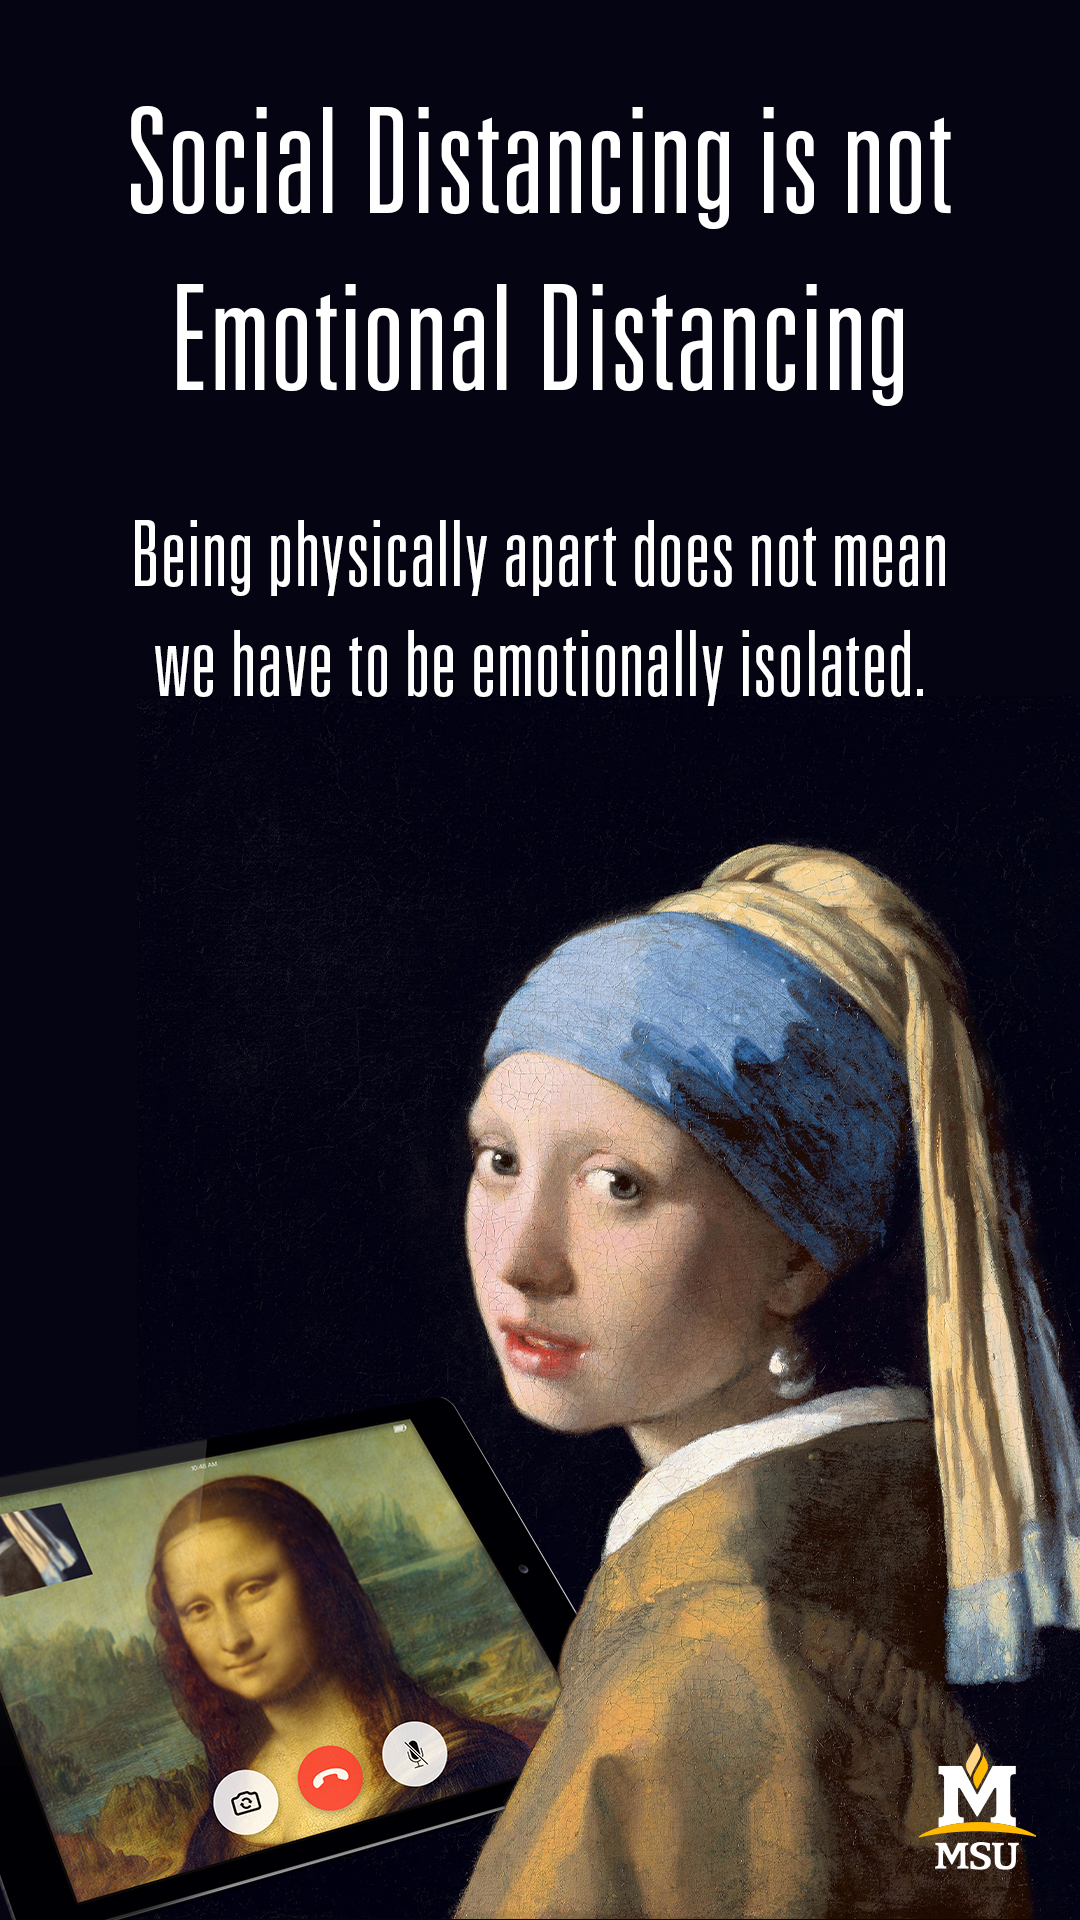 Being physically apart does not mean we have to be emotionally isolated